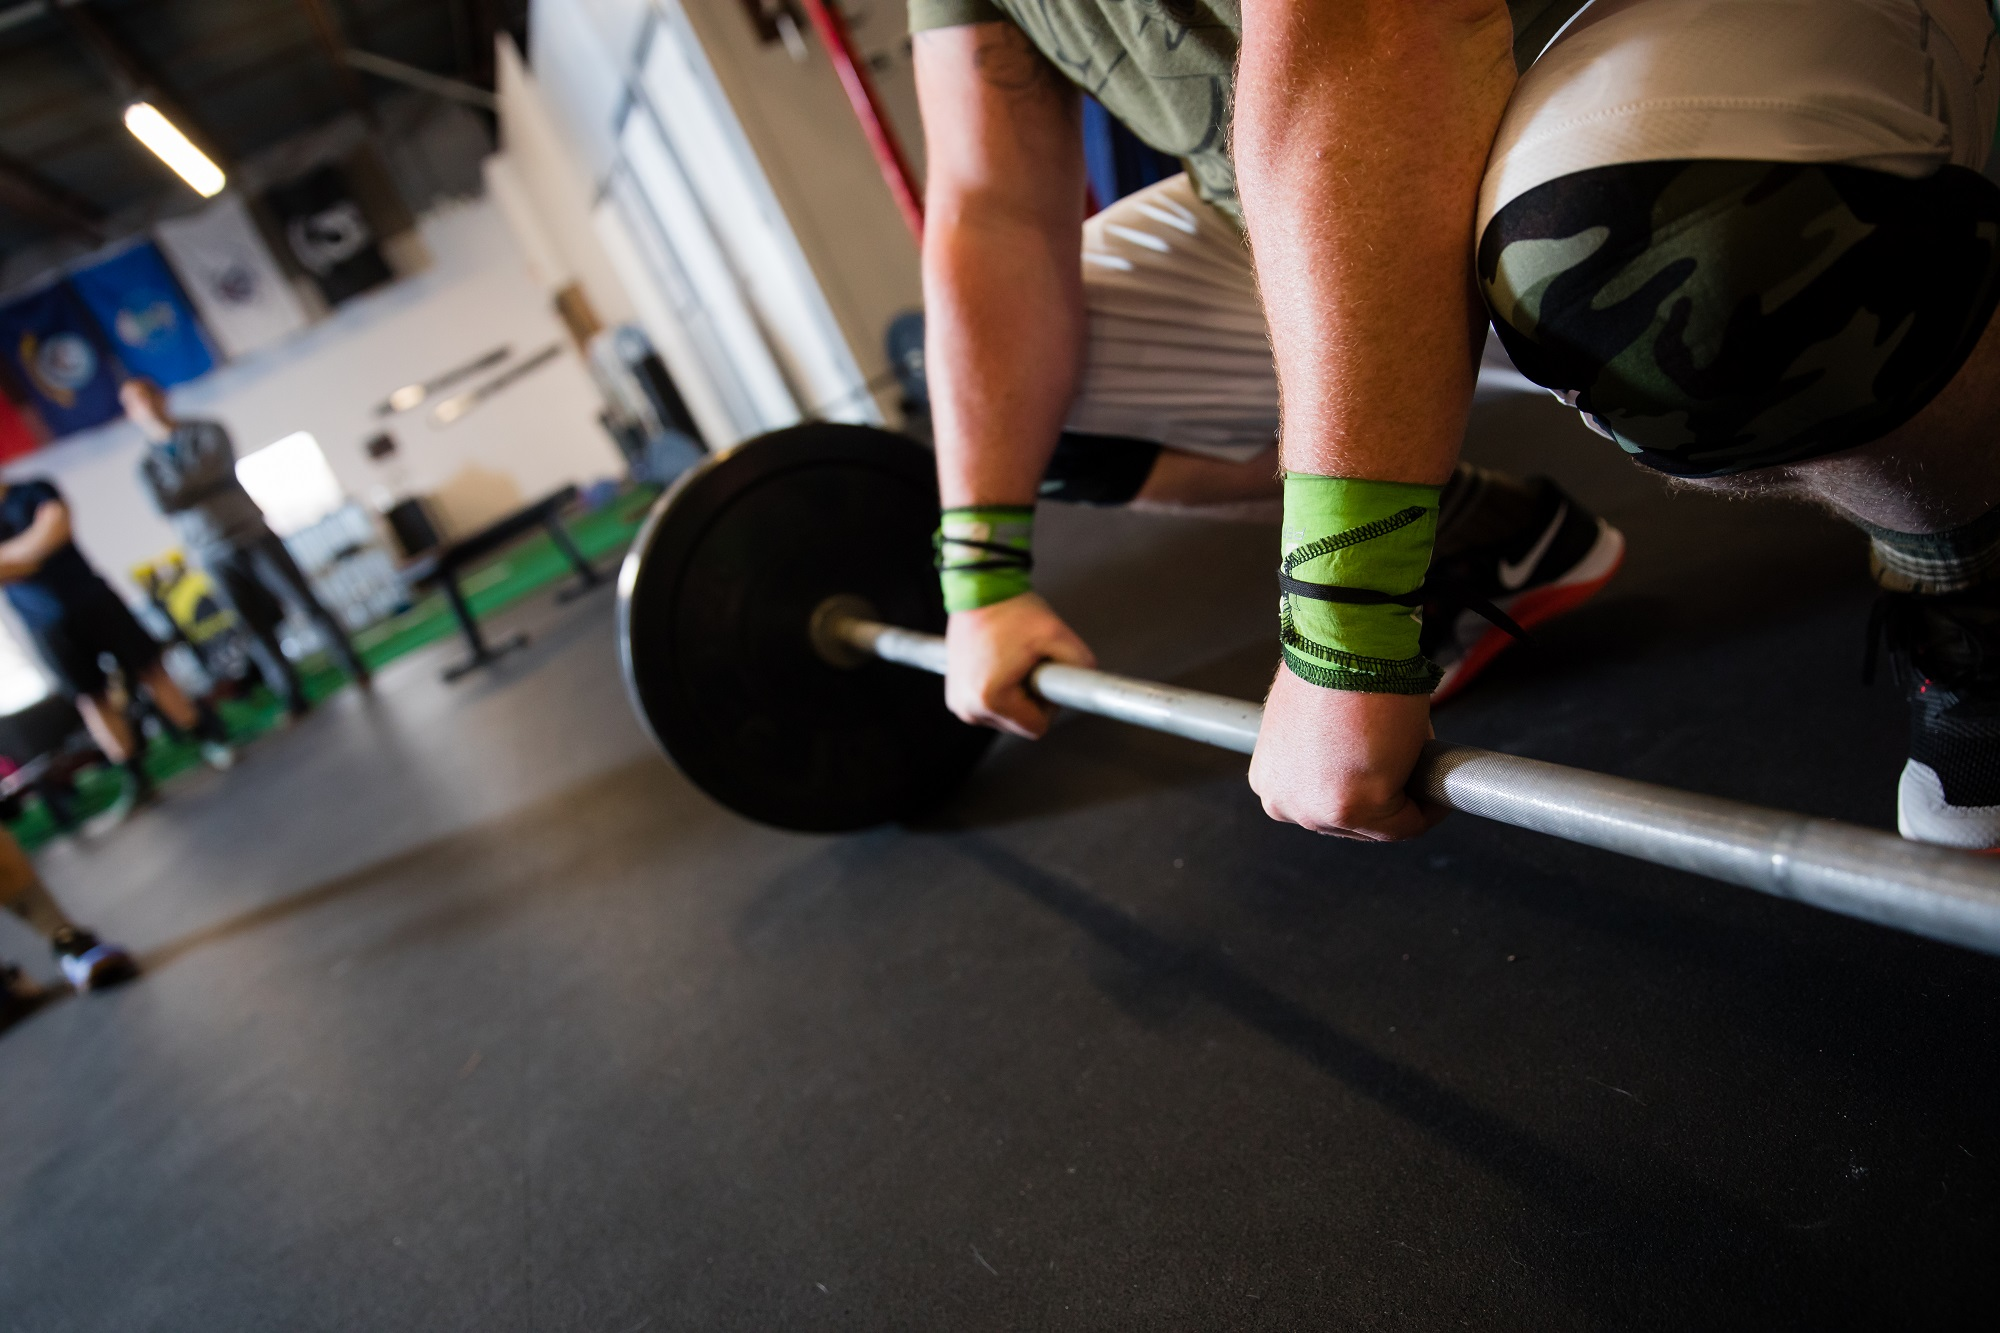 Workout of the Day: WOD - CLICK HERE